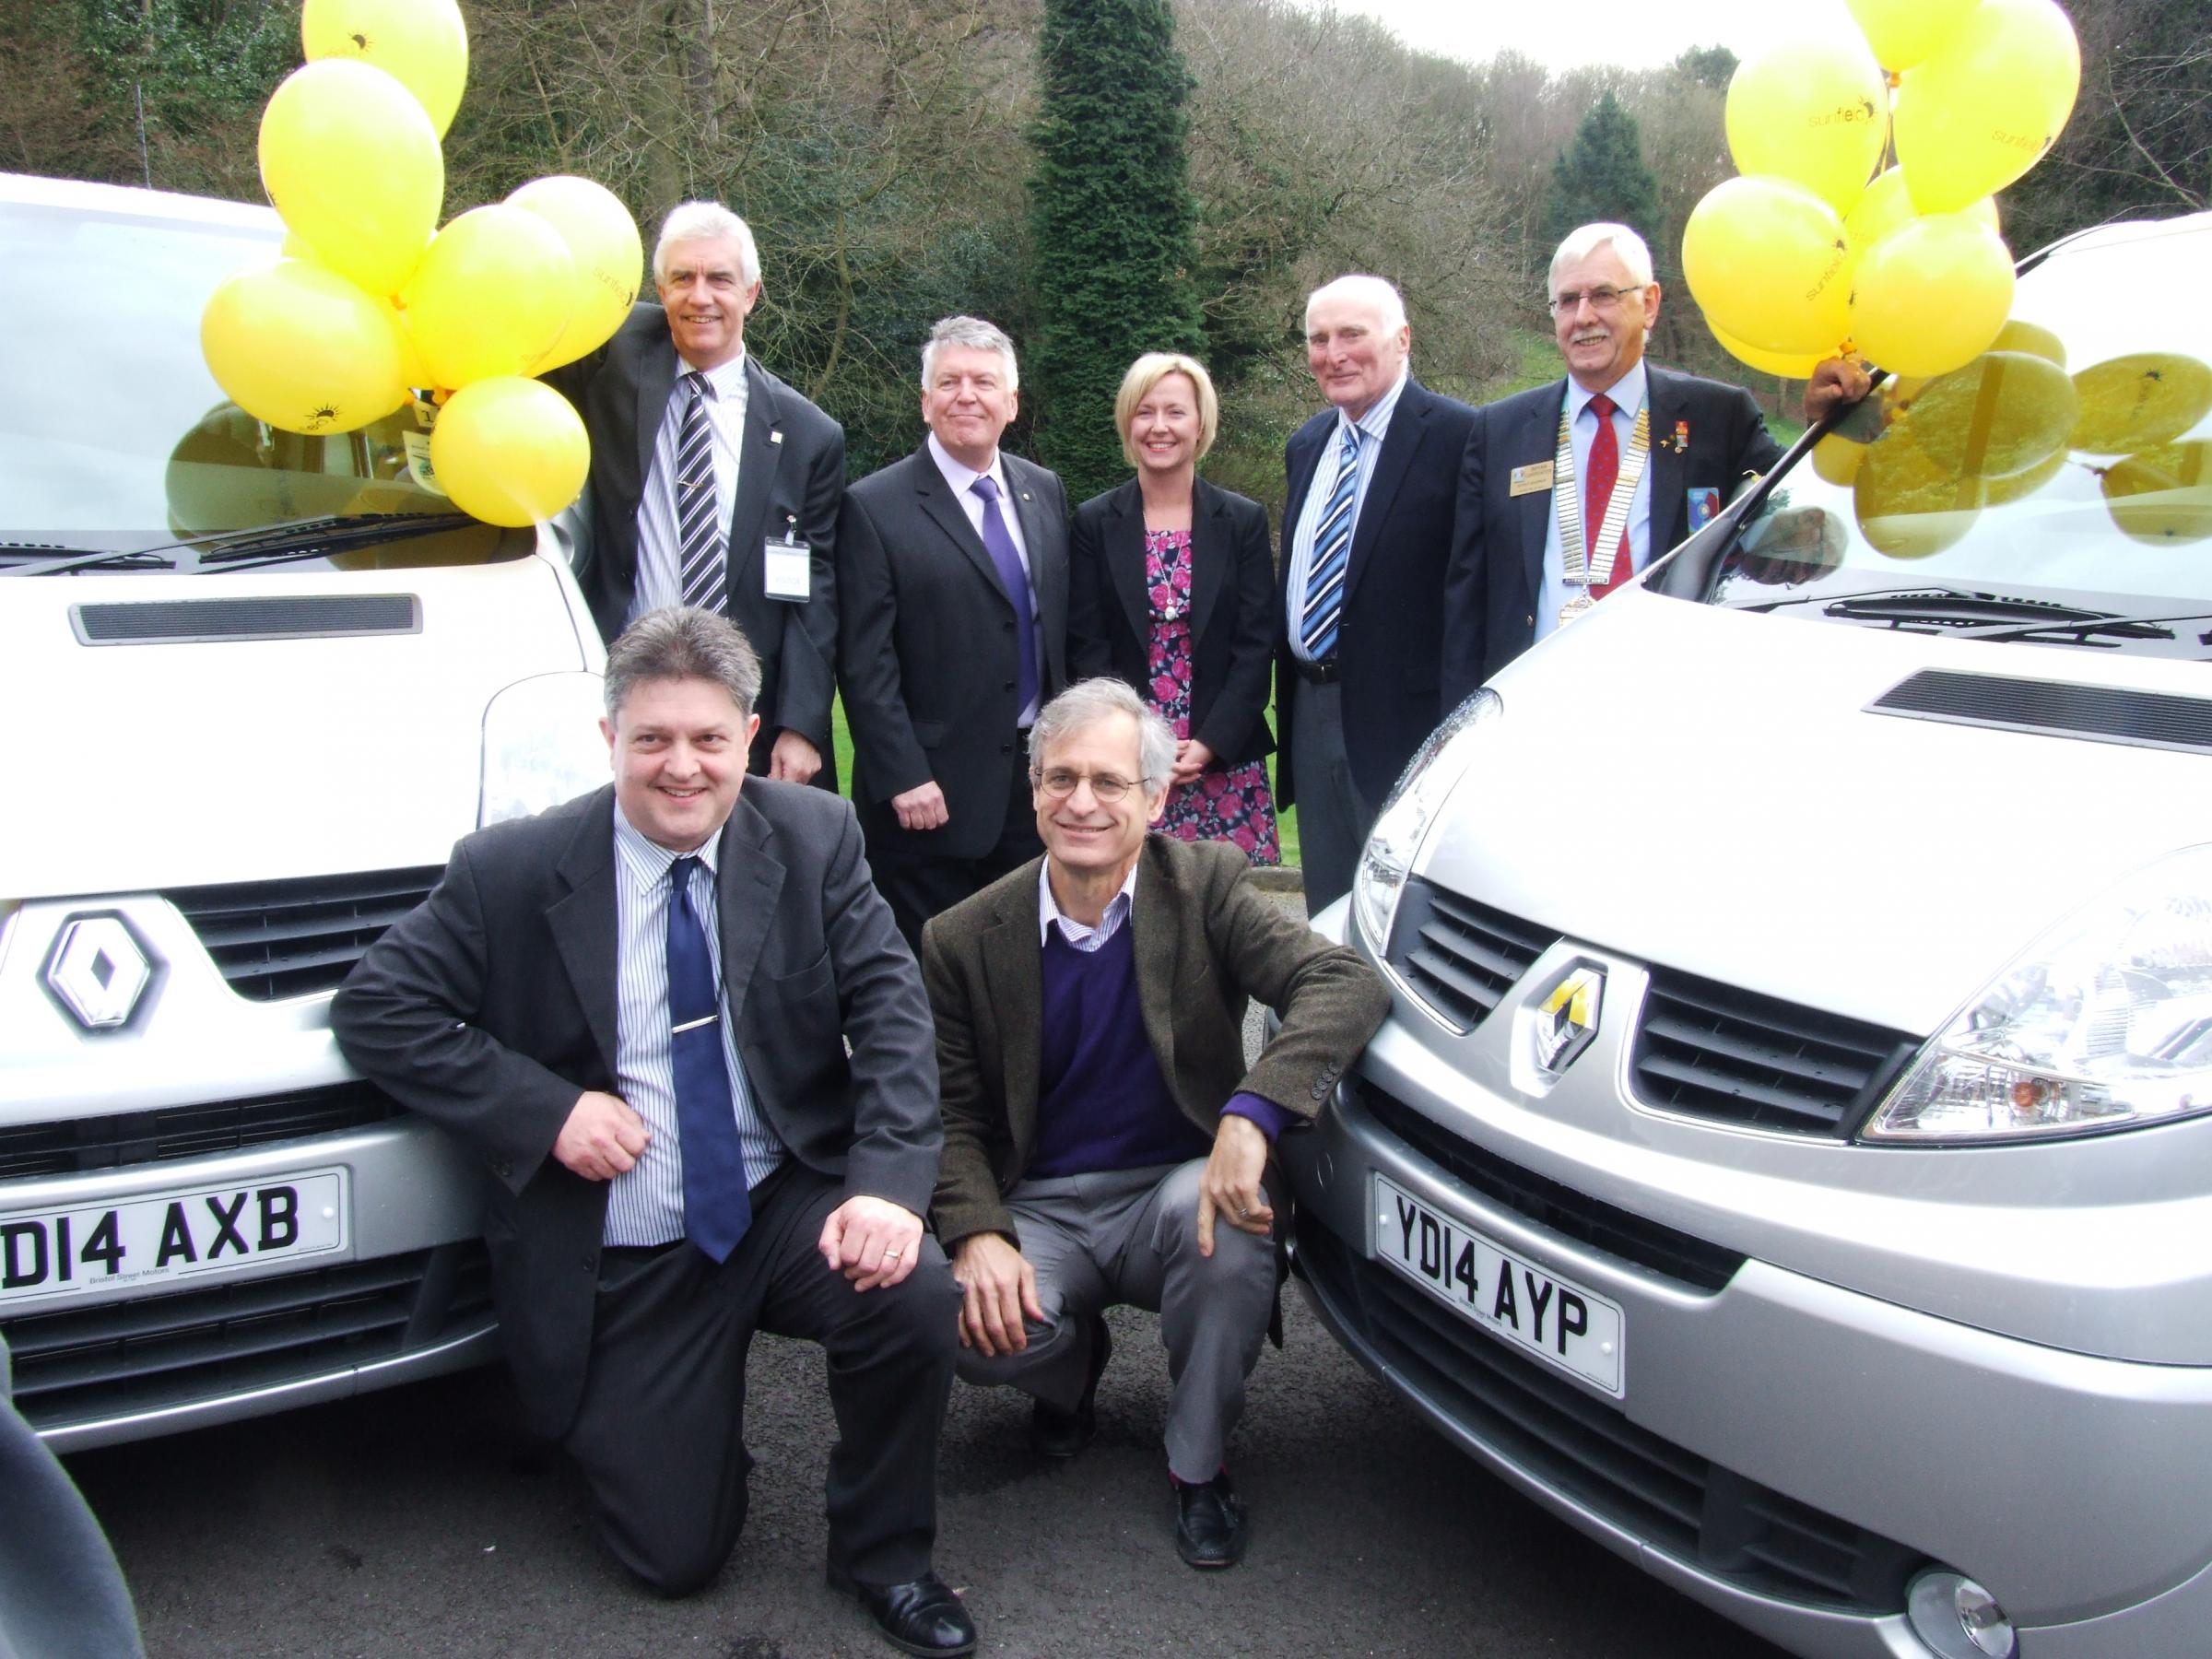 Front l-r - Sunfield's Ian Jones and CEO Michael Frosch; back l-r - Steven Jones (Halesowen & Rowley Regis Rotary), Alan Bowler (Rotary), Theresa Gregory (Barclays), Mike Brown (Dreamland Bedding), Bryan Carpenter - Rotary district governor.